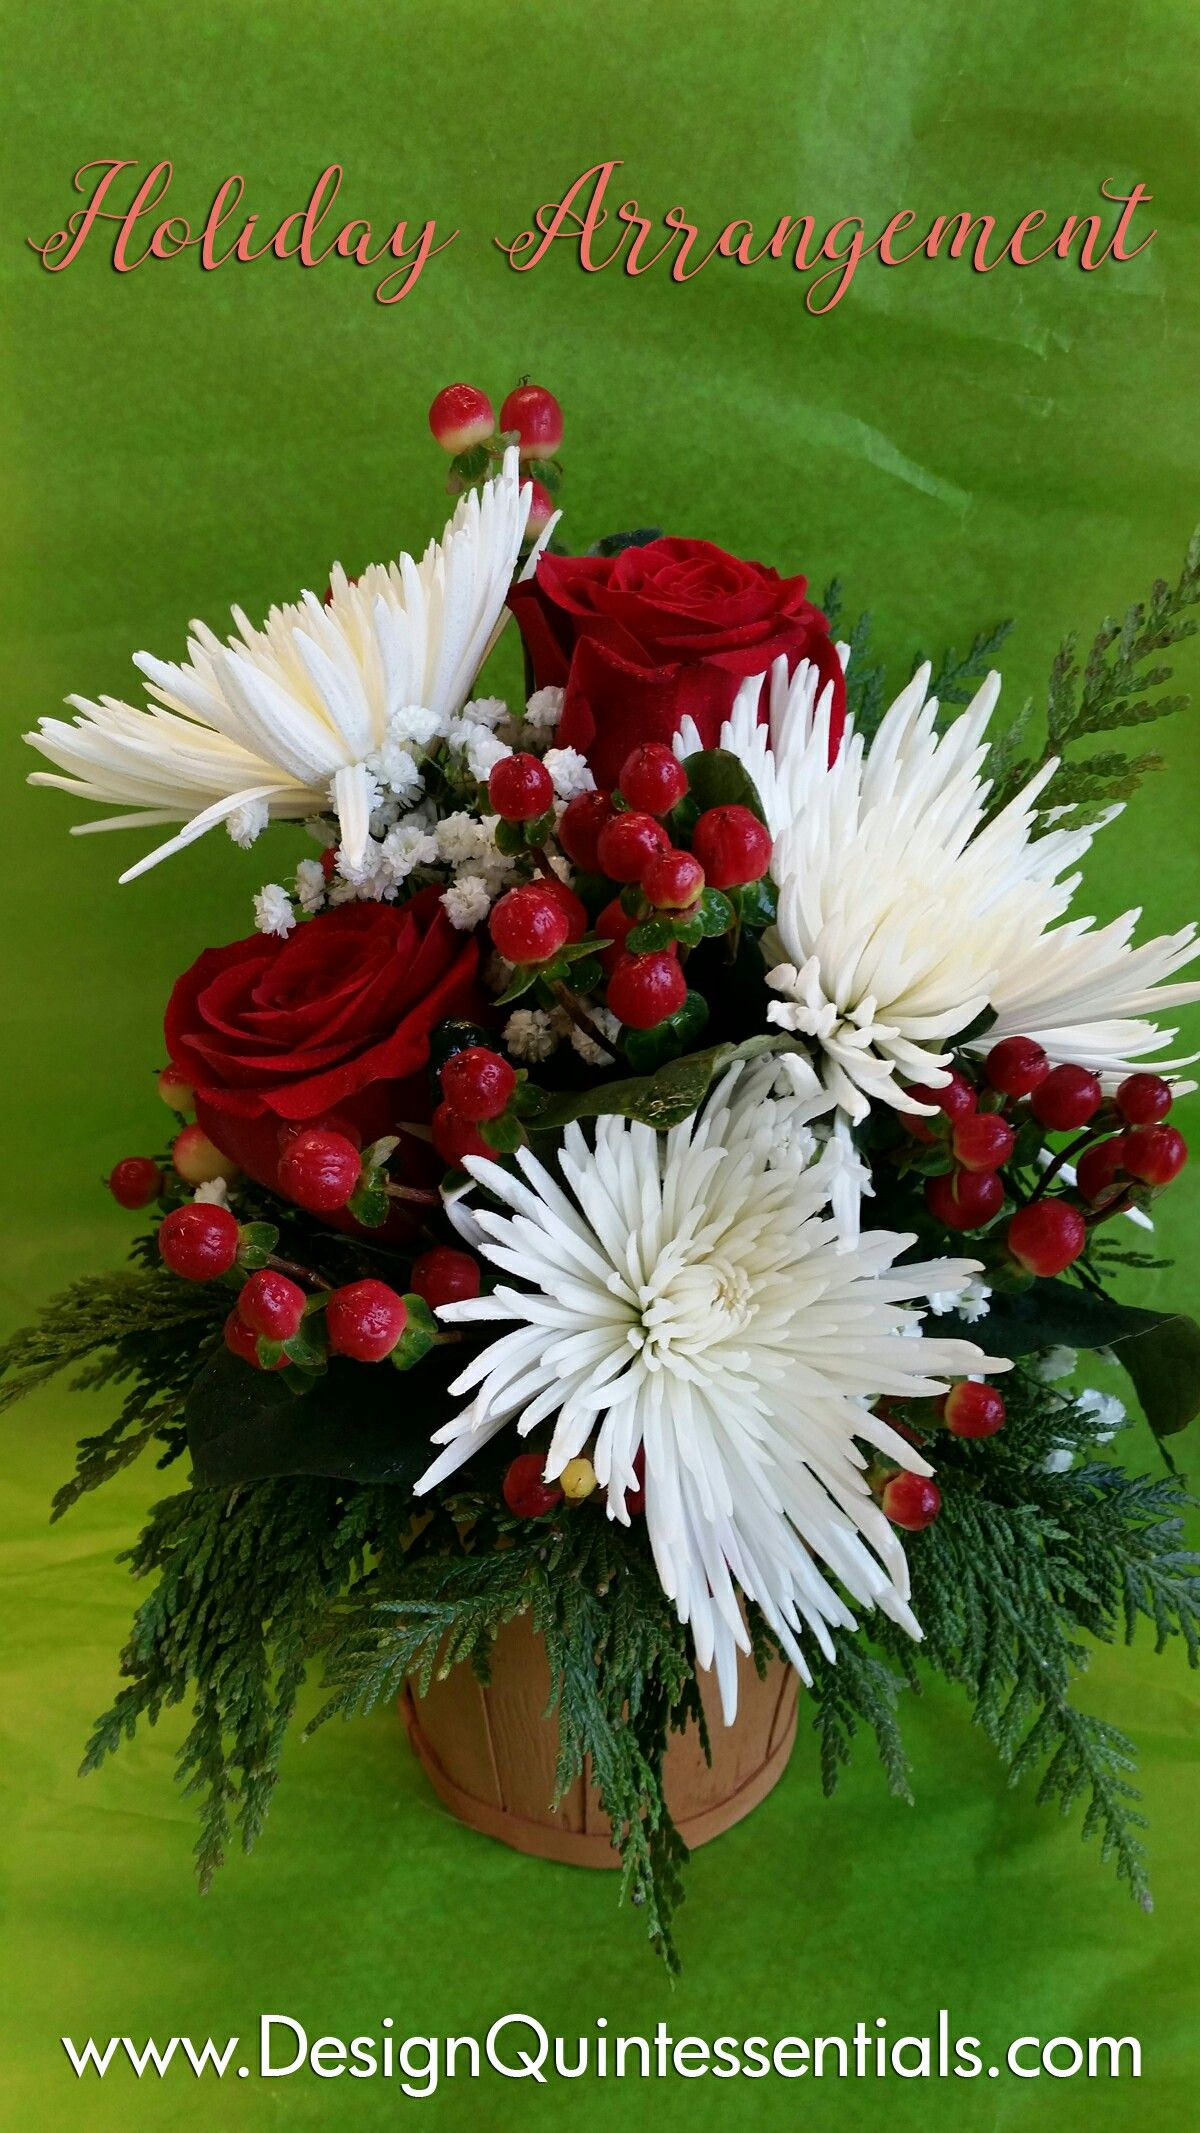 Christmas Arrangement With White Chrysanthemums, Red Roses And Red Hypercium